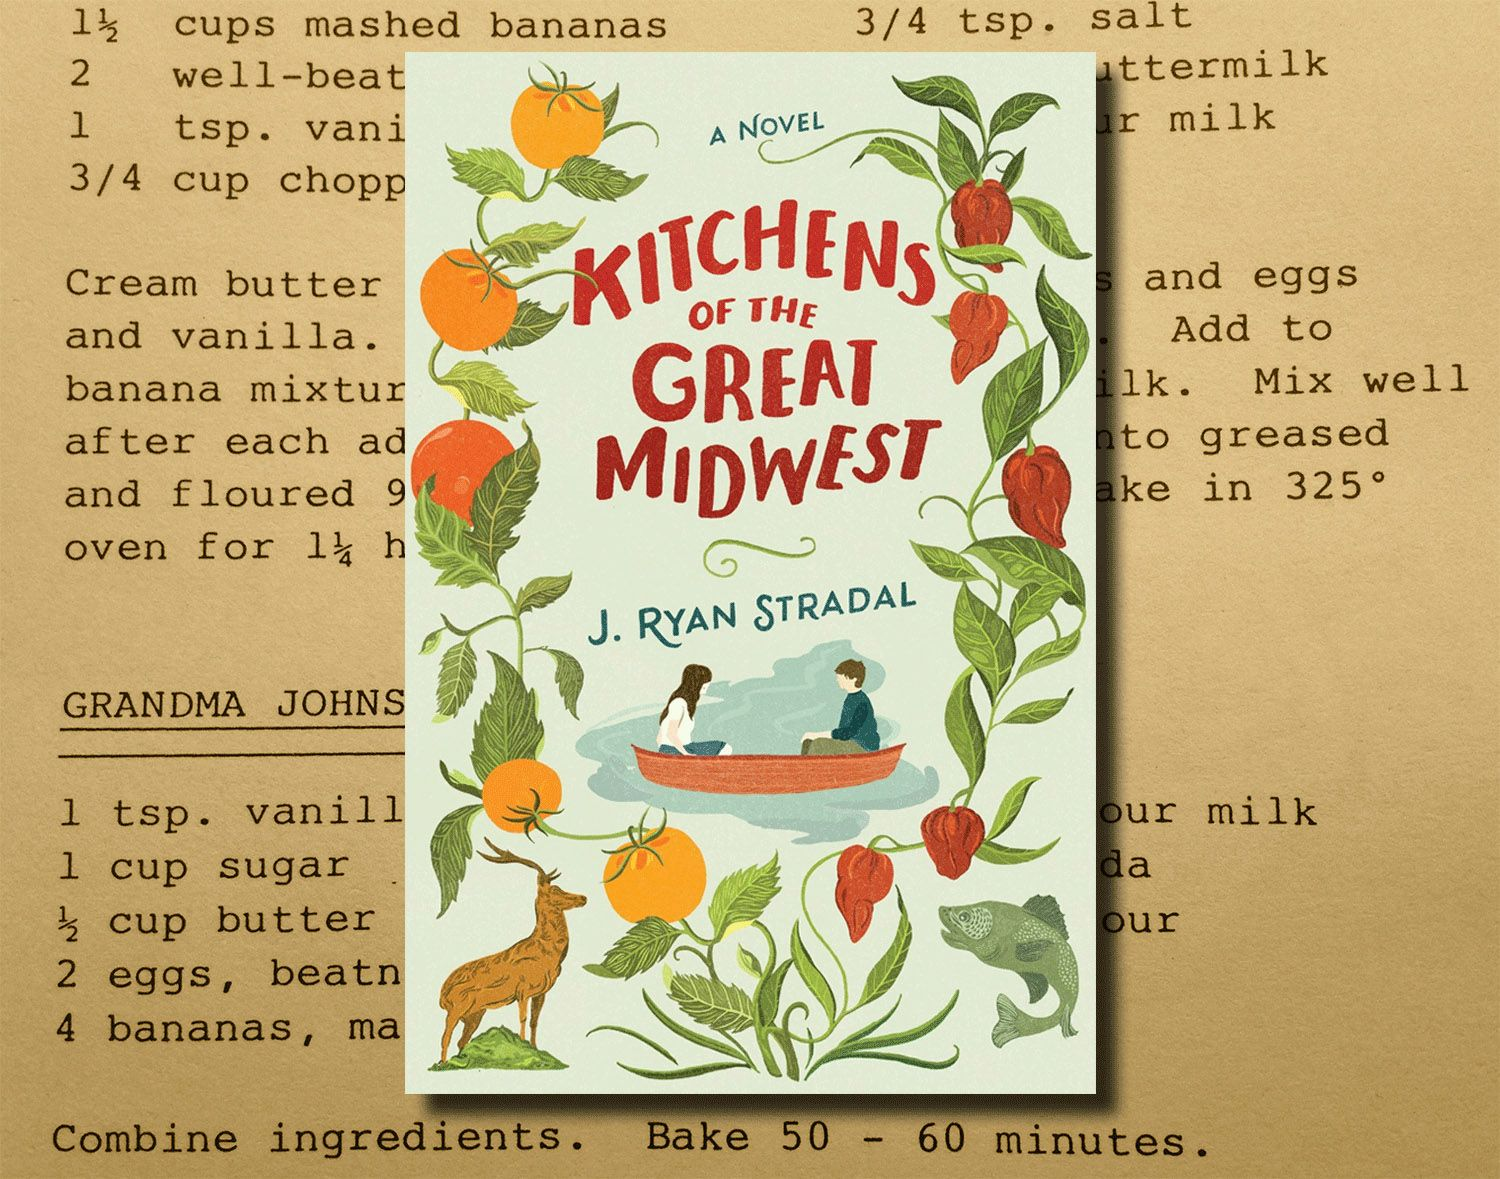 Kitchens of the Great Midwest by J. Ryan Stradal Good